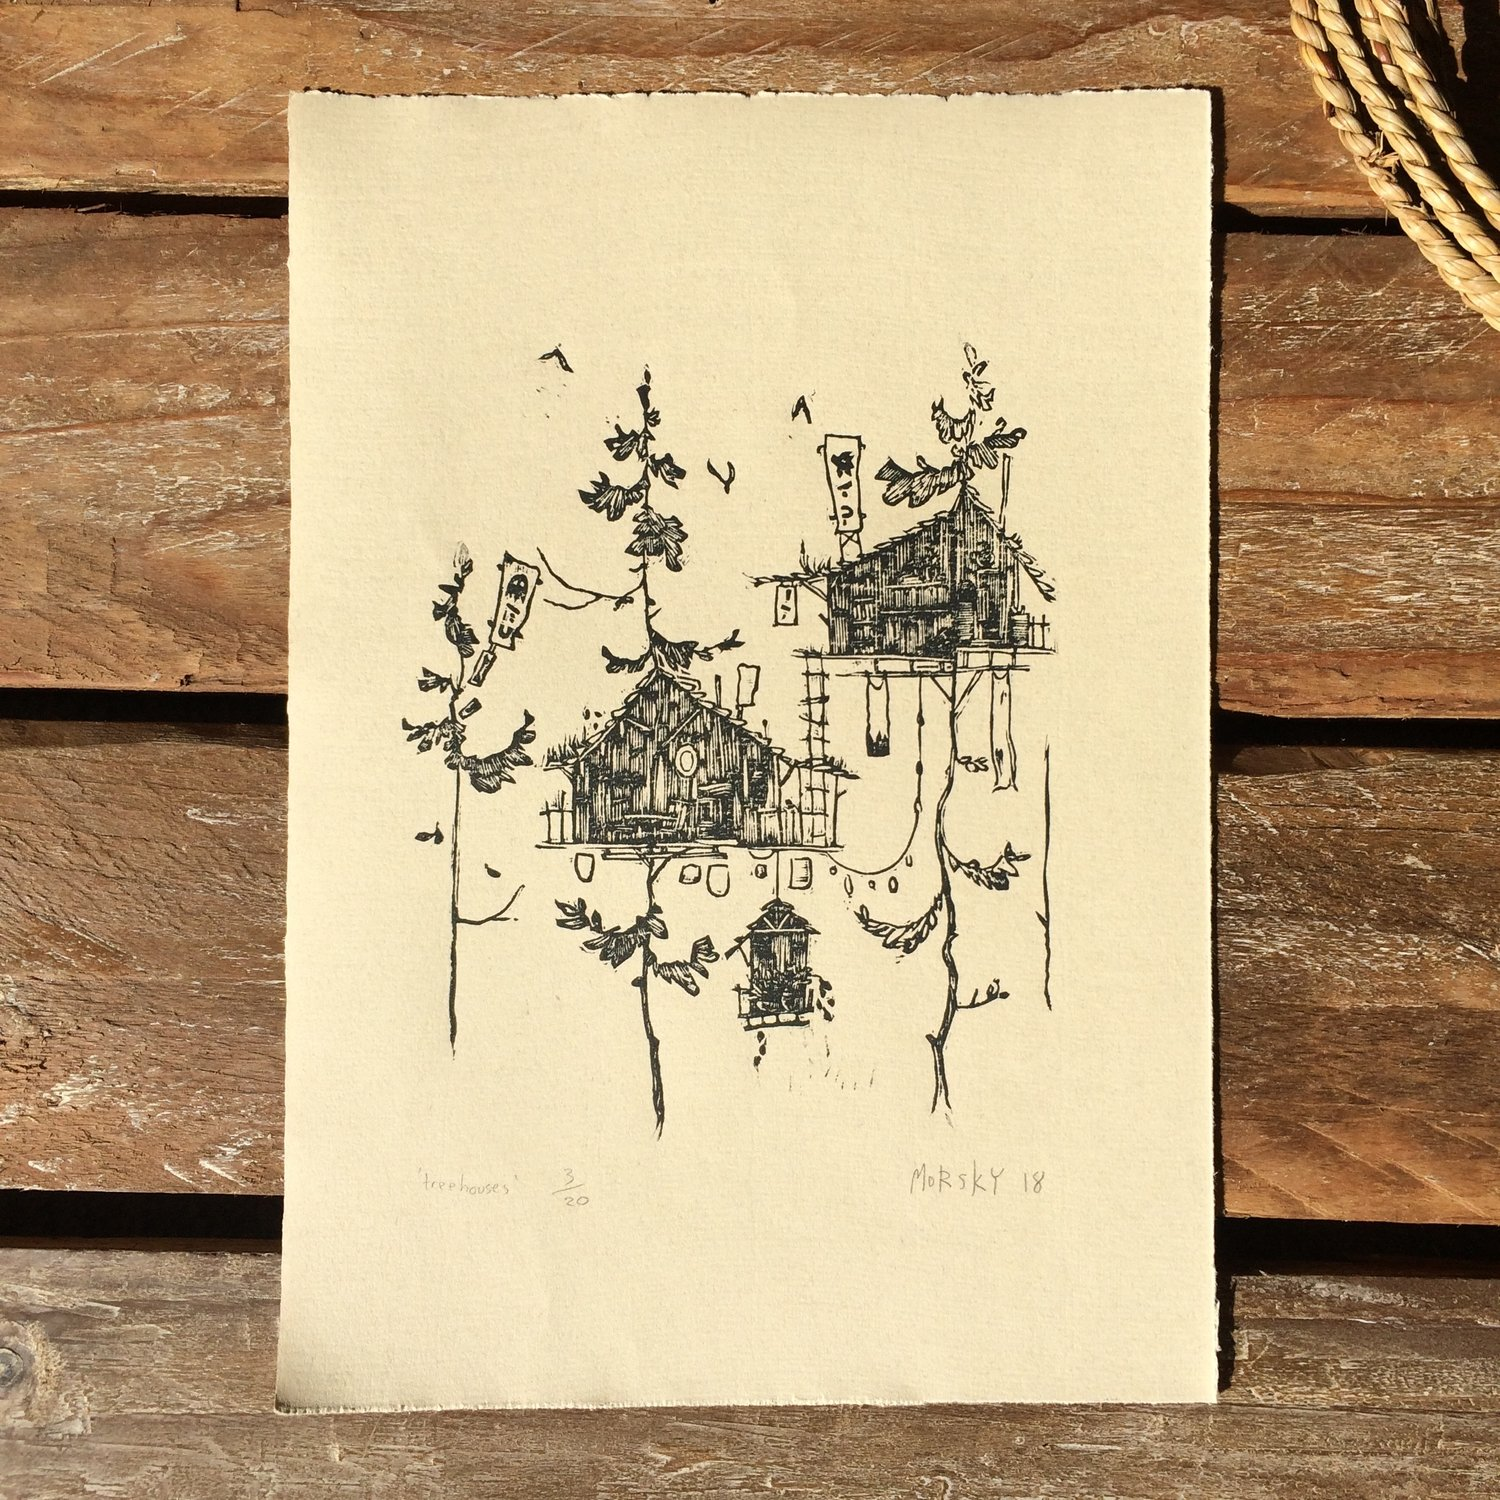 Tree House Signed Limited Edition Linocut Print by Morsky Studio